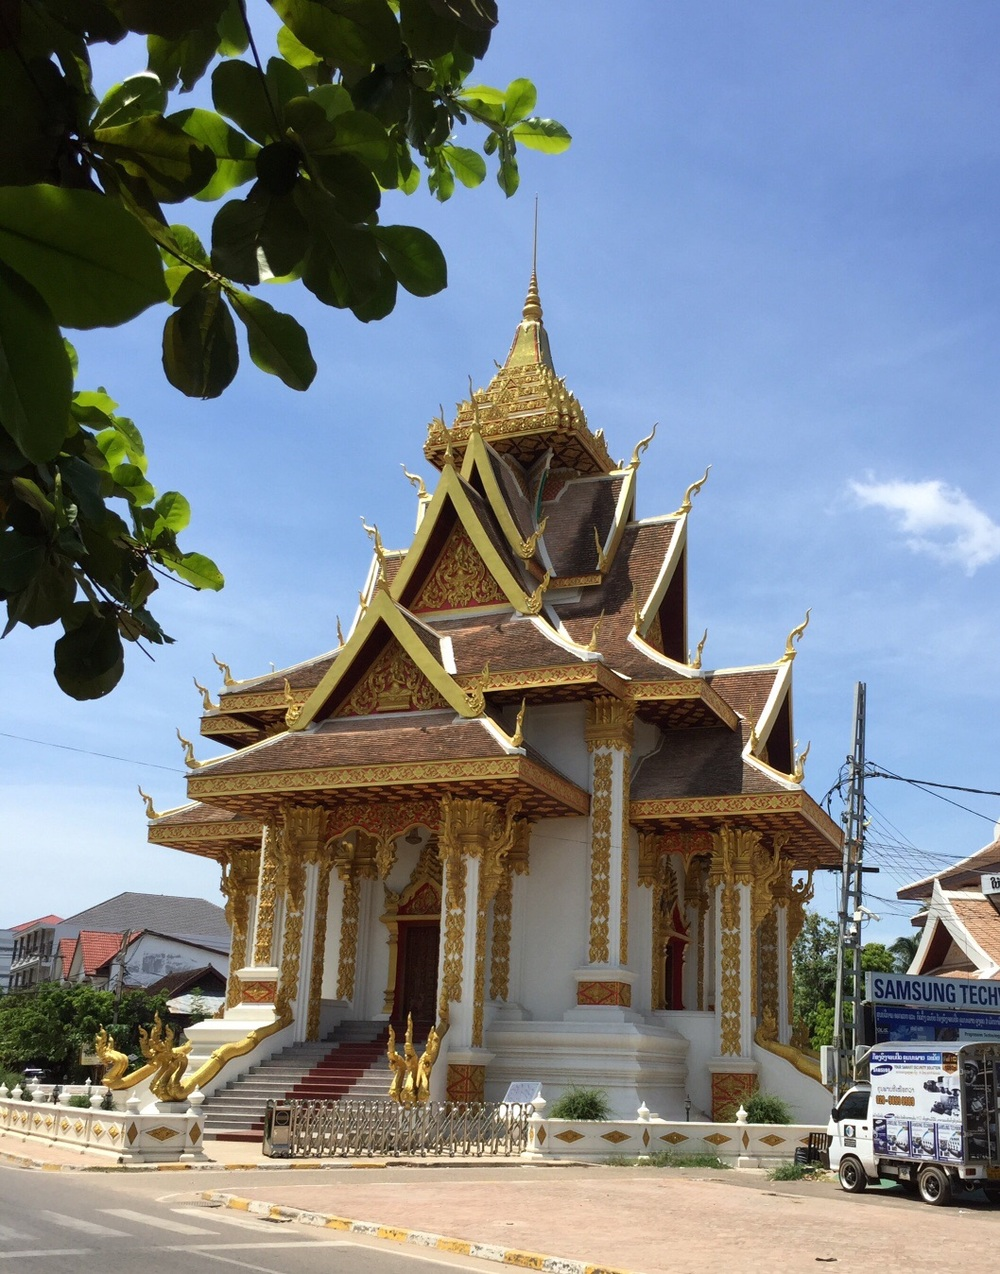 Vientiane is full of beautiful Buddhist wats (temples) all immaculately cared for